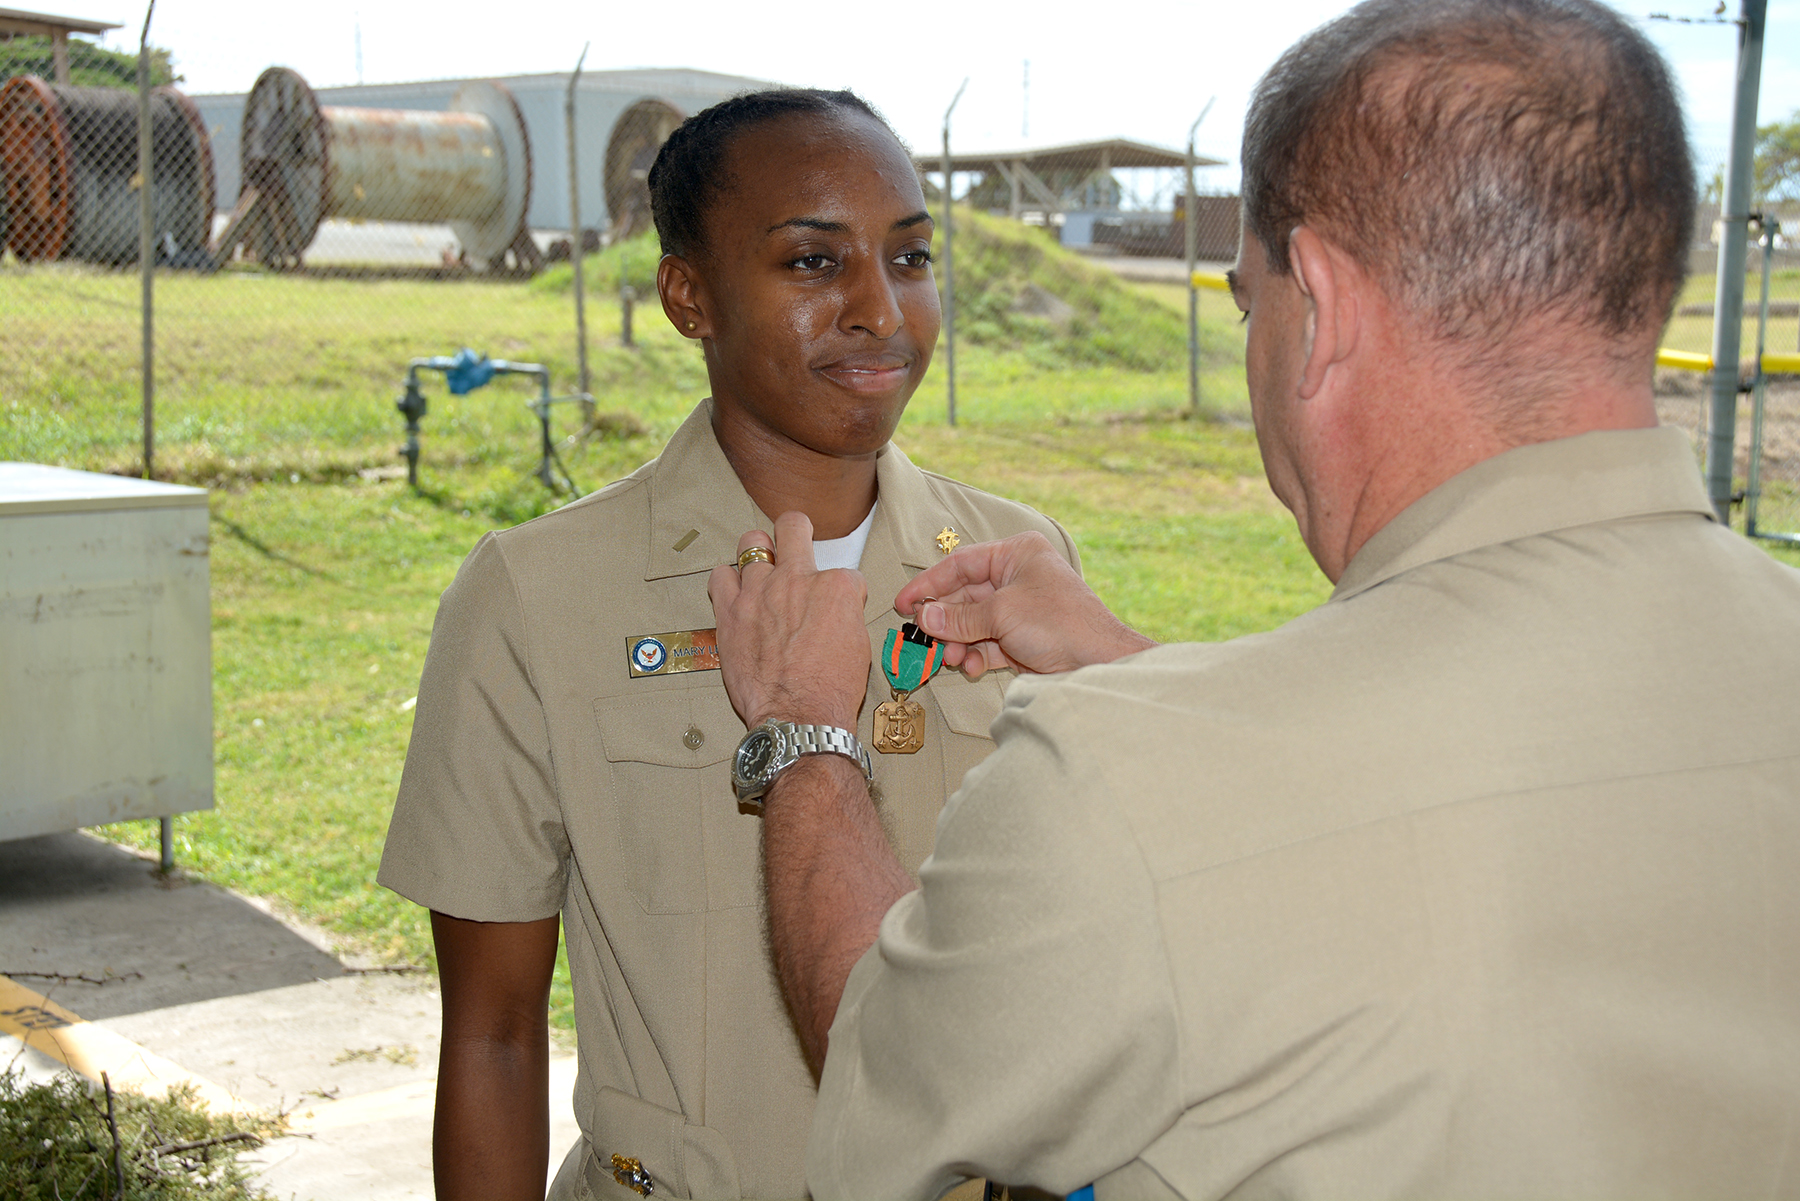 """U.S. Navy Photo """" Navy and Marine Corps Achievement Medal - Leone """" by  Denise Emsley ,  NAVFAC Hawaii , Public Affairs/Released is licensed under  CC BY 2.0 ."""